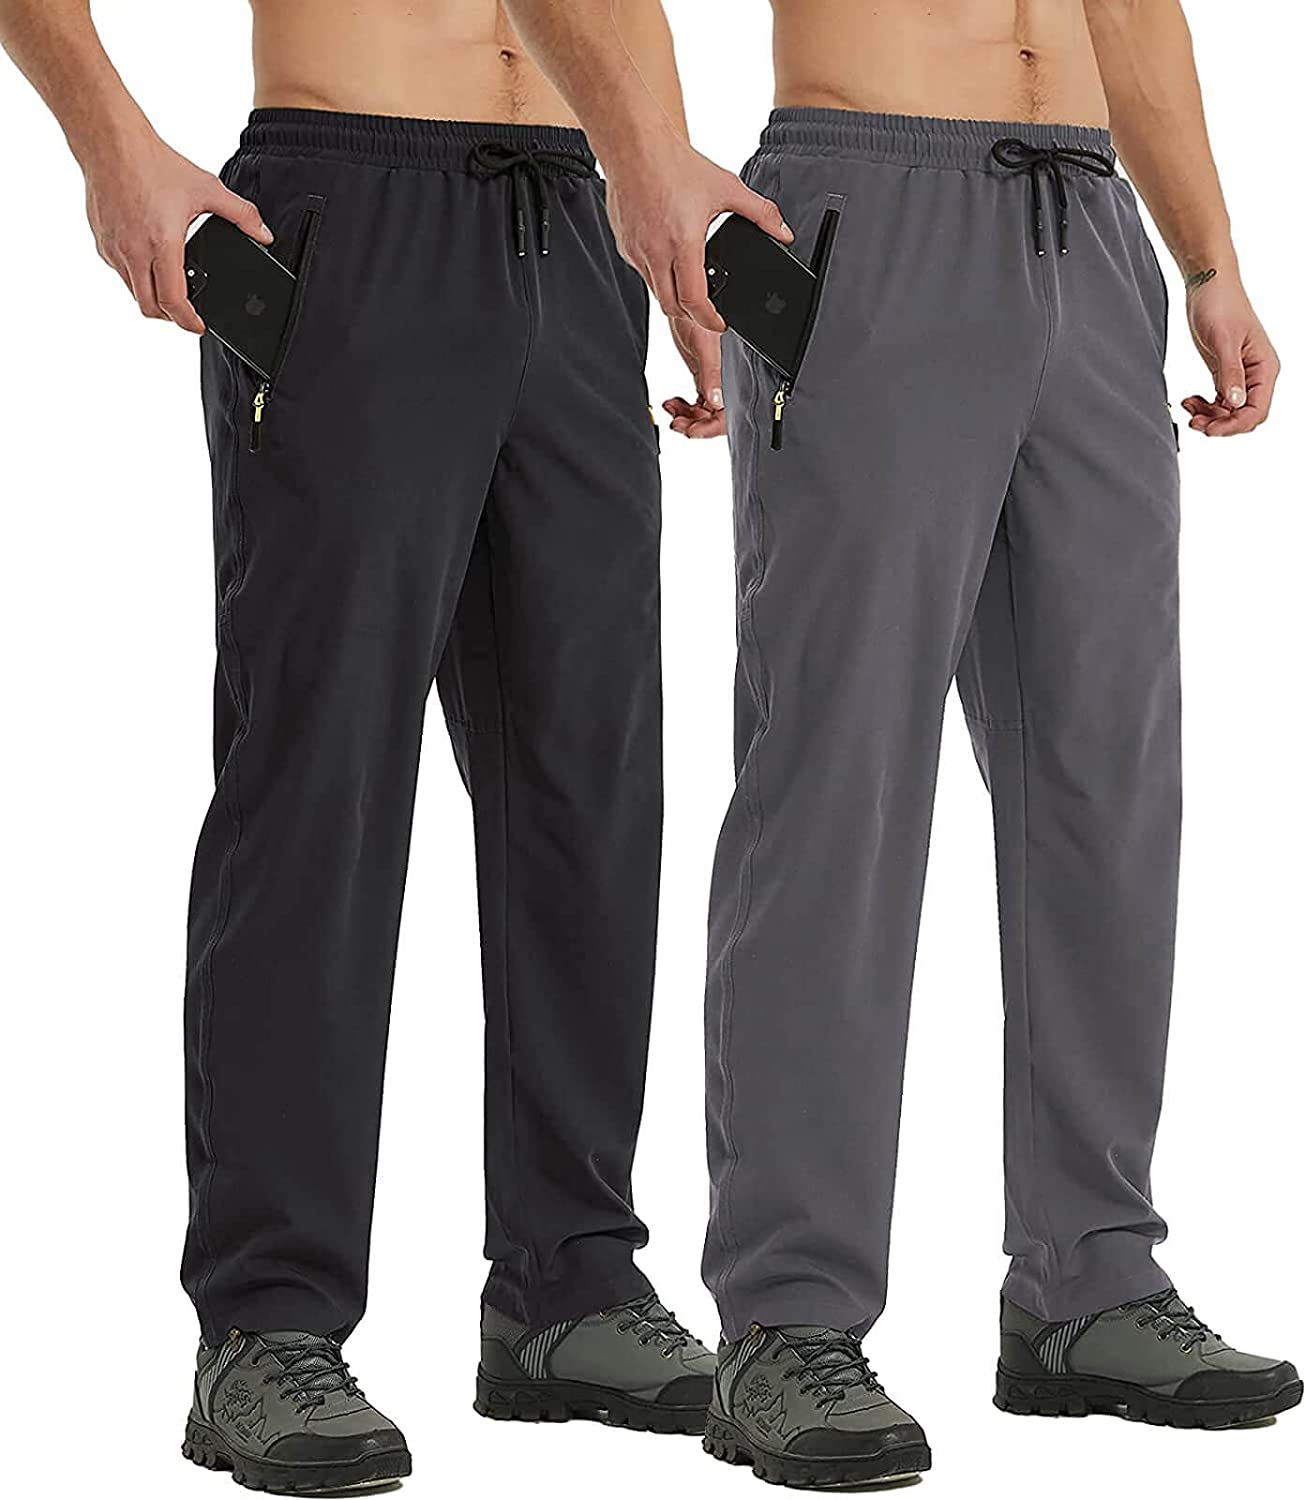 PRIESSEI Ranking TOP14 Nippon regular agency Men's Quick Dry Hiking Pants Workout Breathable L